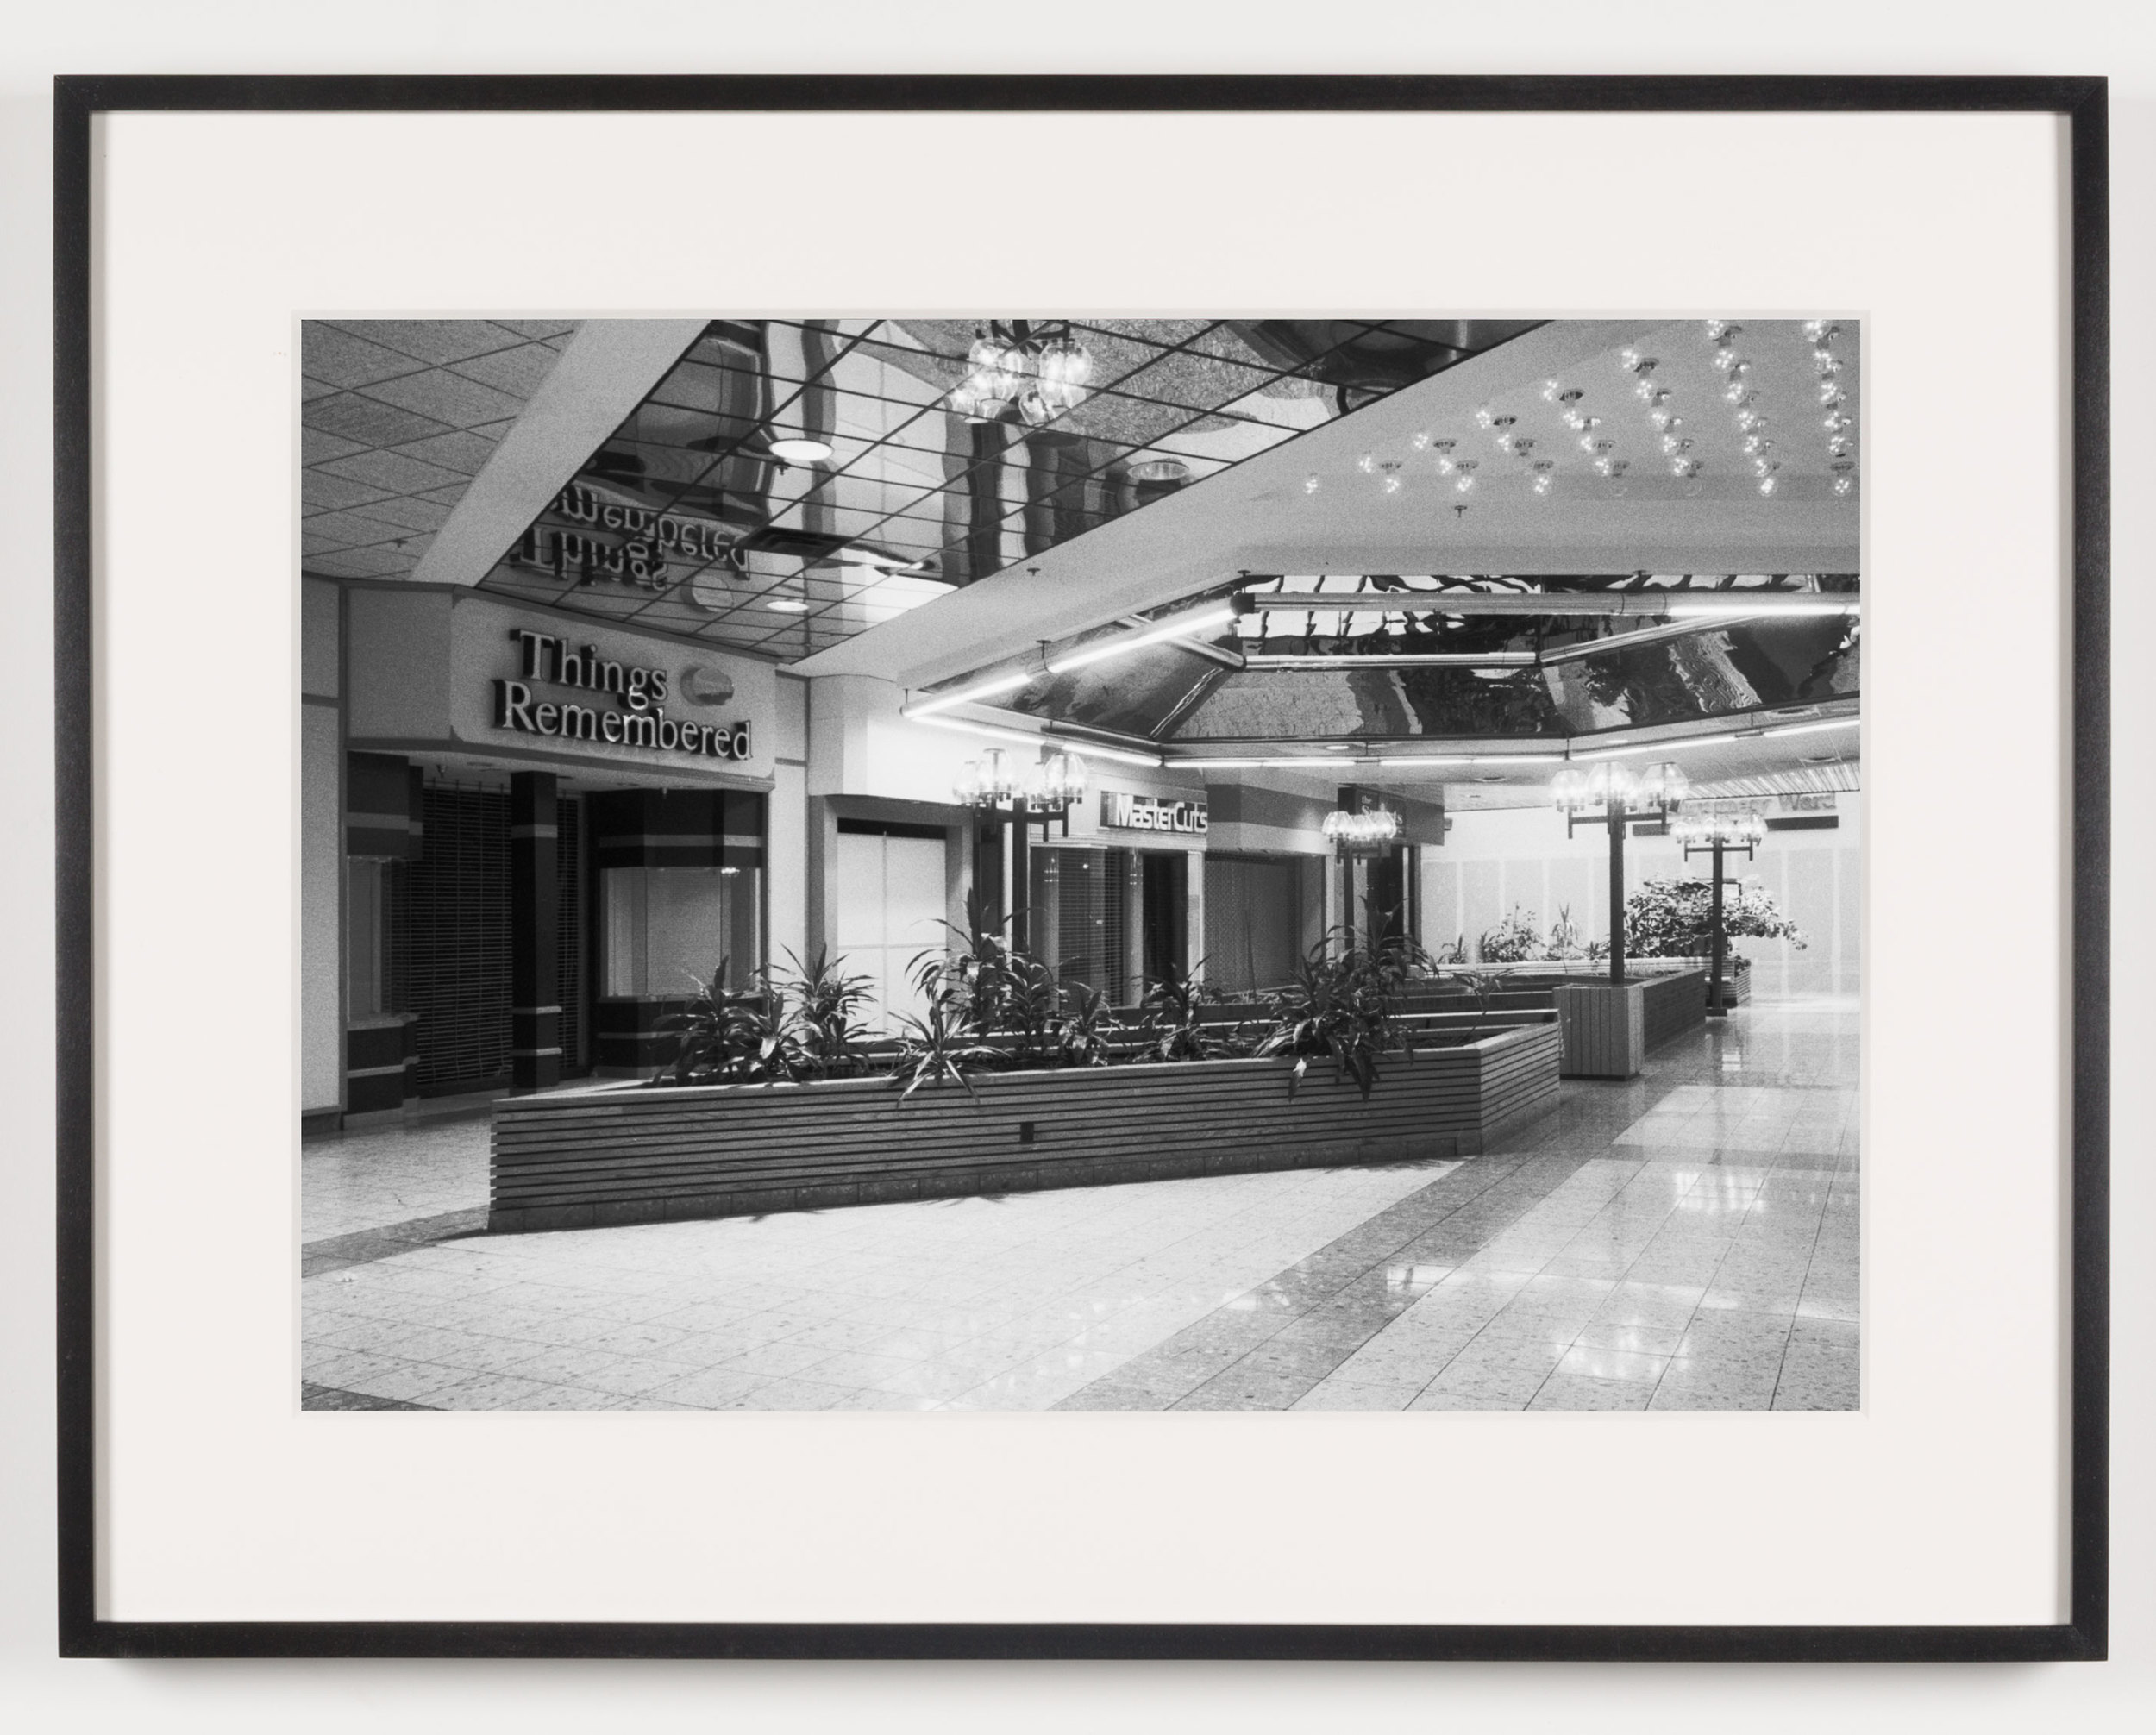 Southwyck Mall, Toledo, OH, Est 1972, Demo 2008    2011   Epson Ultrachrome K3 archival ink jet print on Hahnemühle Photo Rag paper  21 5/8 x 28 1/8 inches   American Passages, 2001–2011